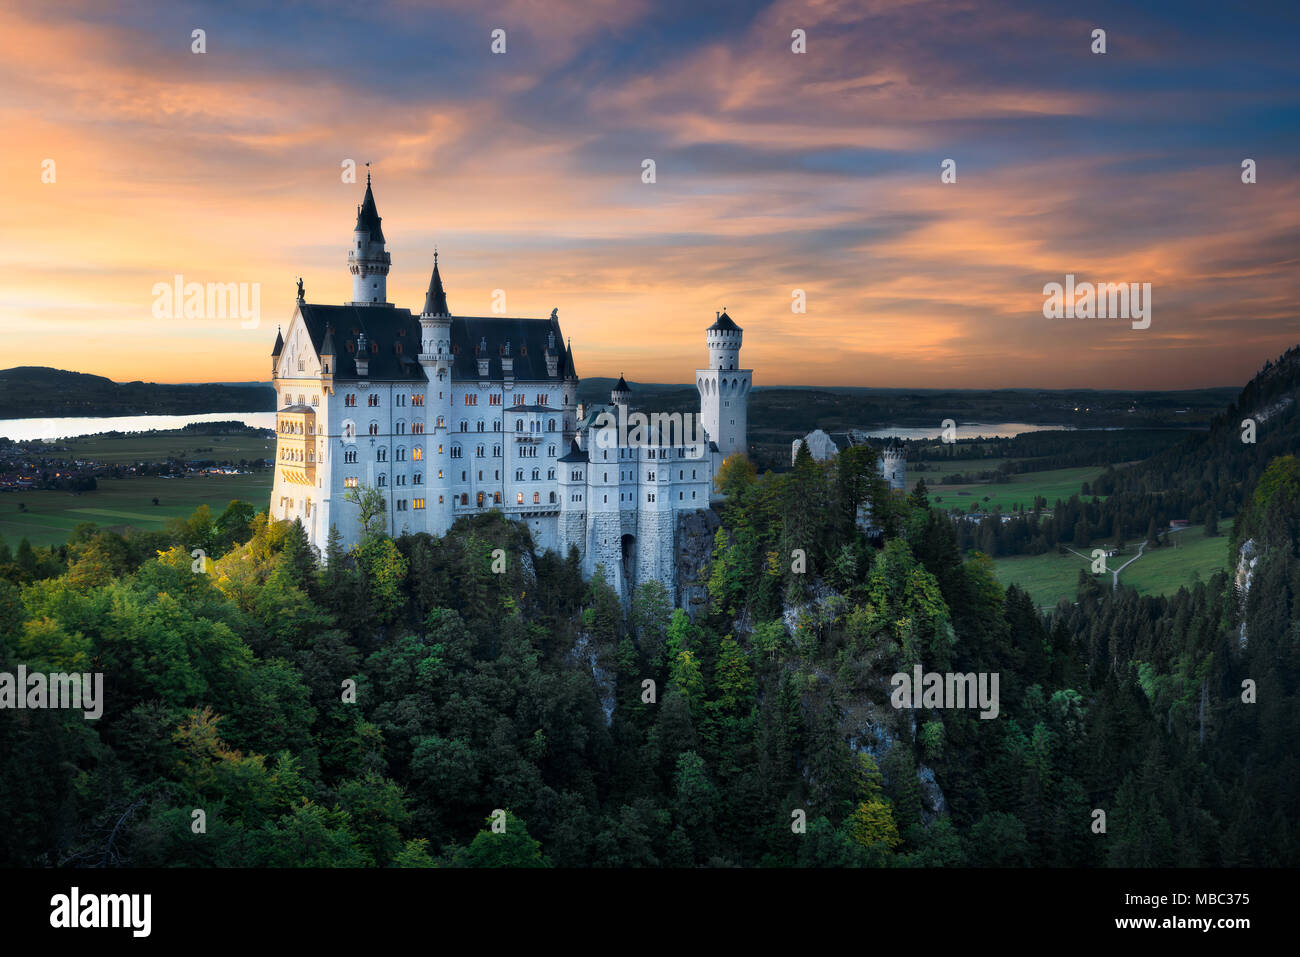 Beautiful view of world-famous Neuschwanstein Castle. Colorful sky during sunset. Autumn colors of forest. Scenic mountain landscape near Fussen, sout - Stock Image